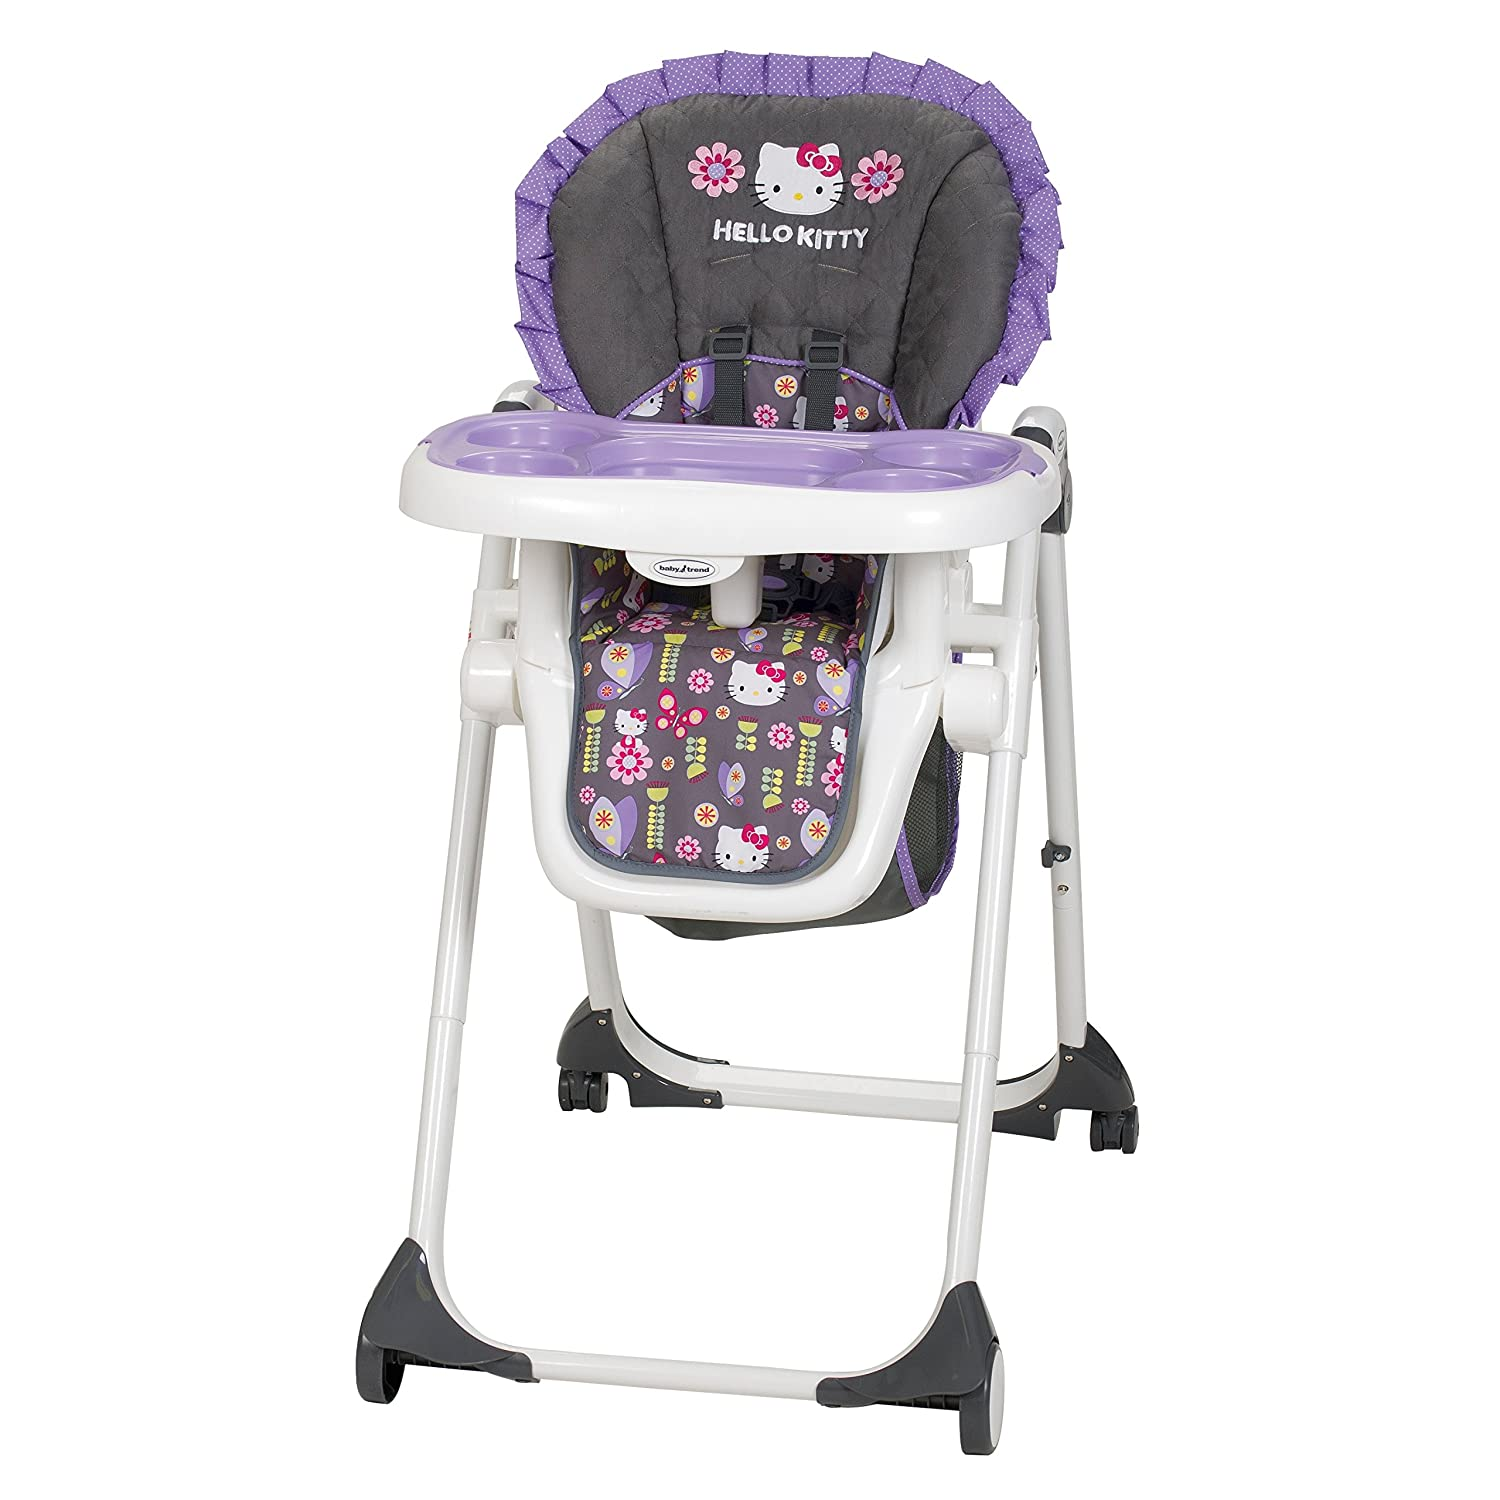 Amazon.com : Baby Trend Deluxe High Chair, Hello Kitty Flower Dance : Baby